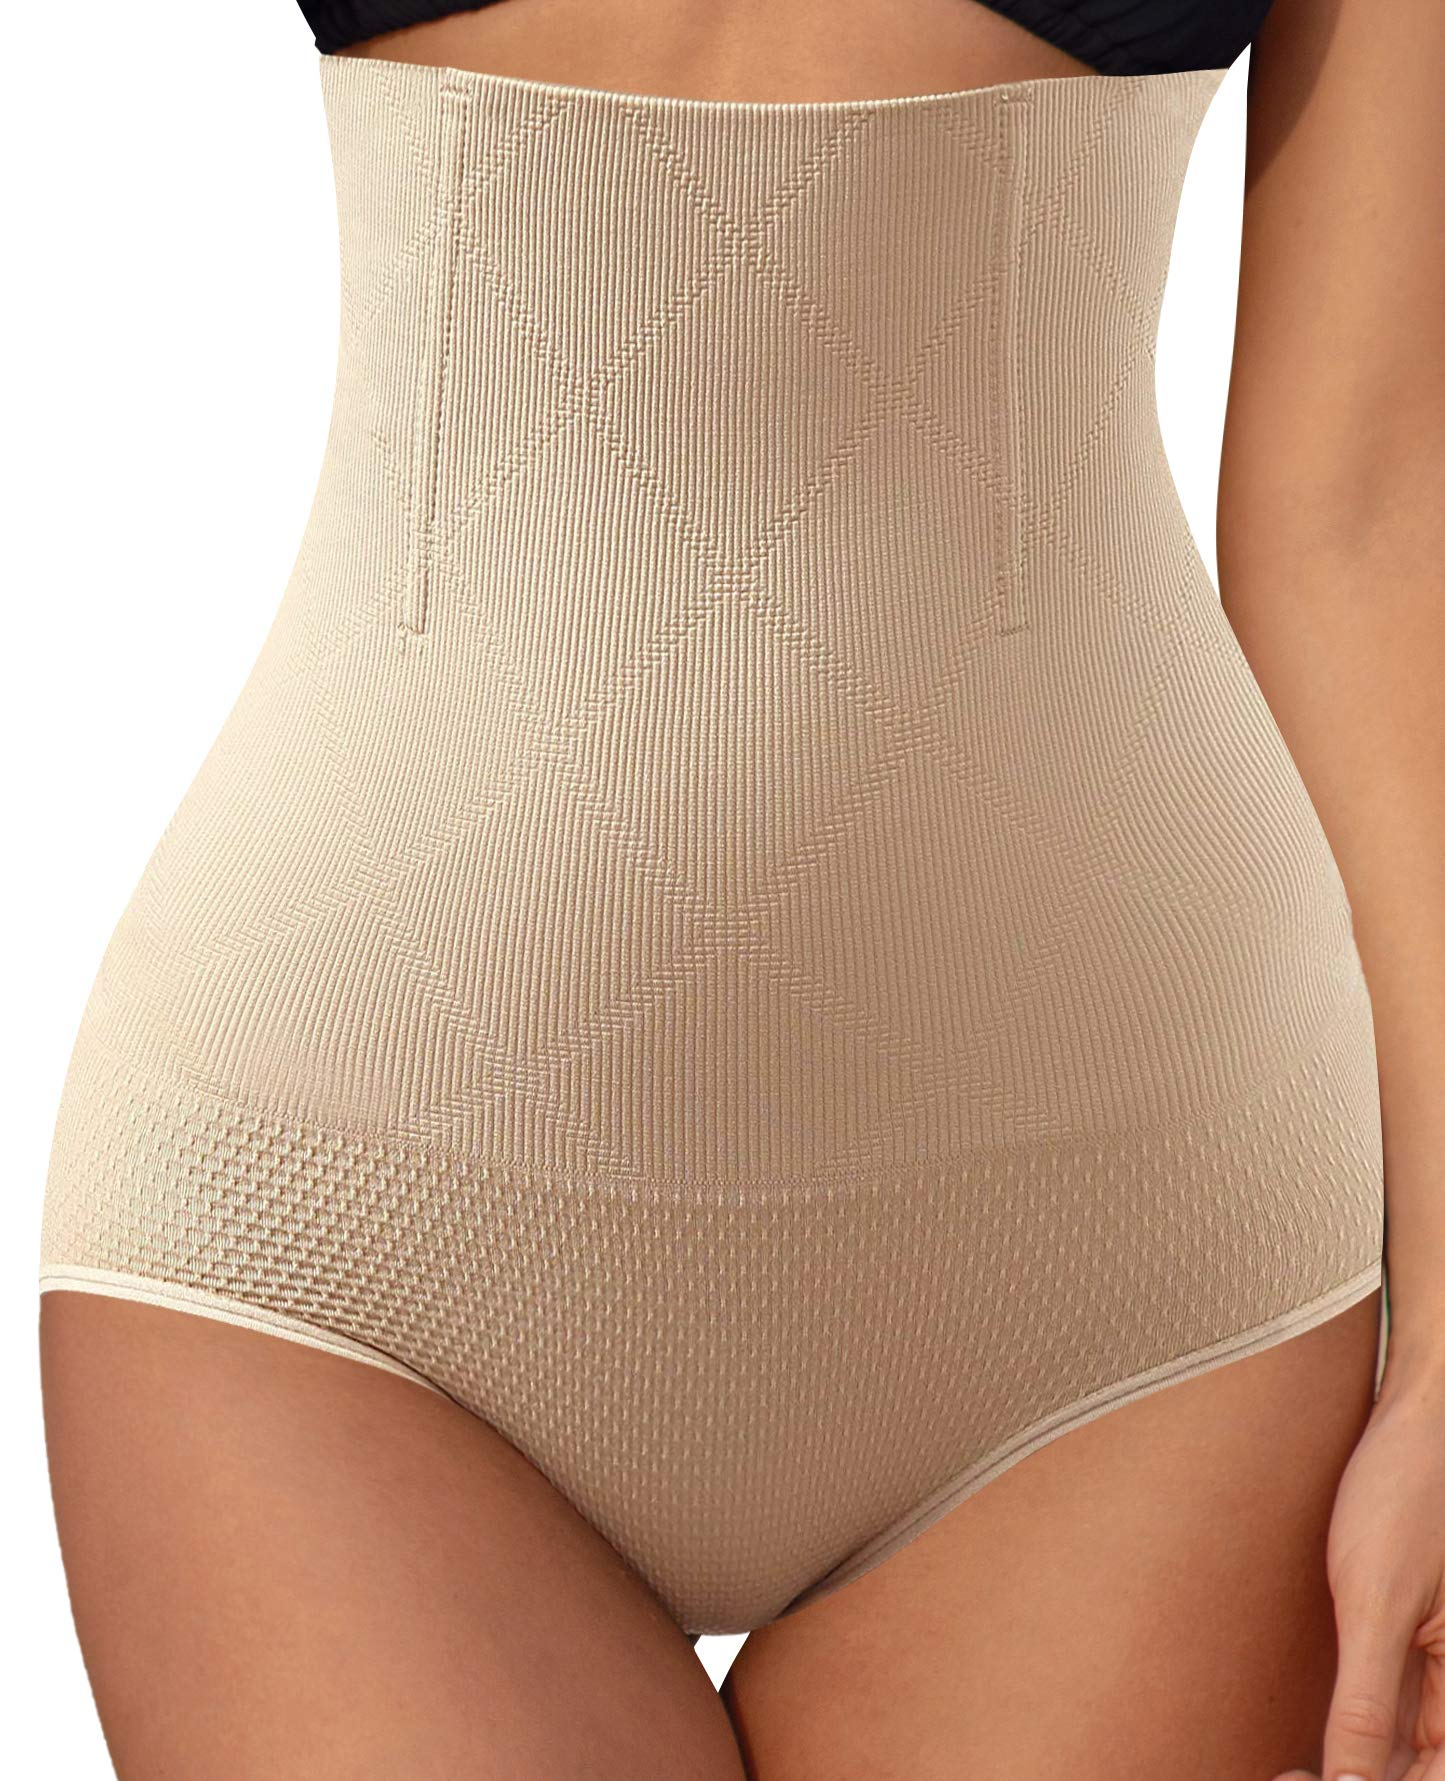 Larry&Marry Shapewear for Women,High Waisted Tummy Firm Control Panties Slimming Body Shaper Underwear